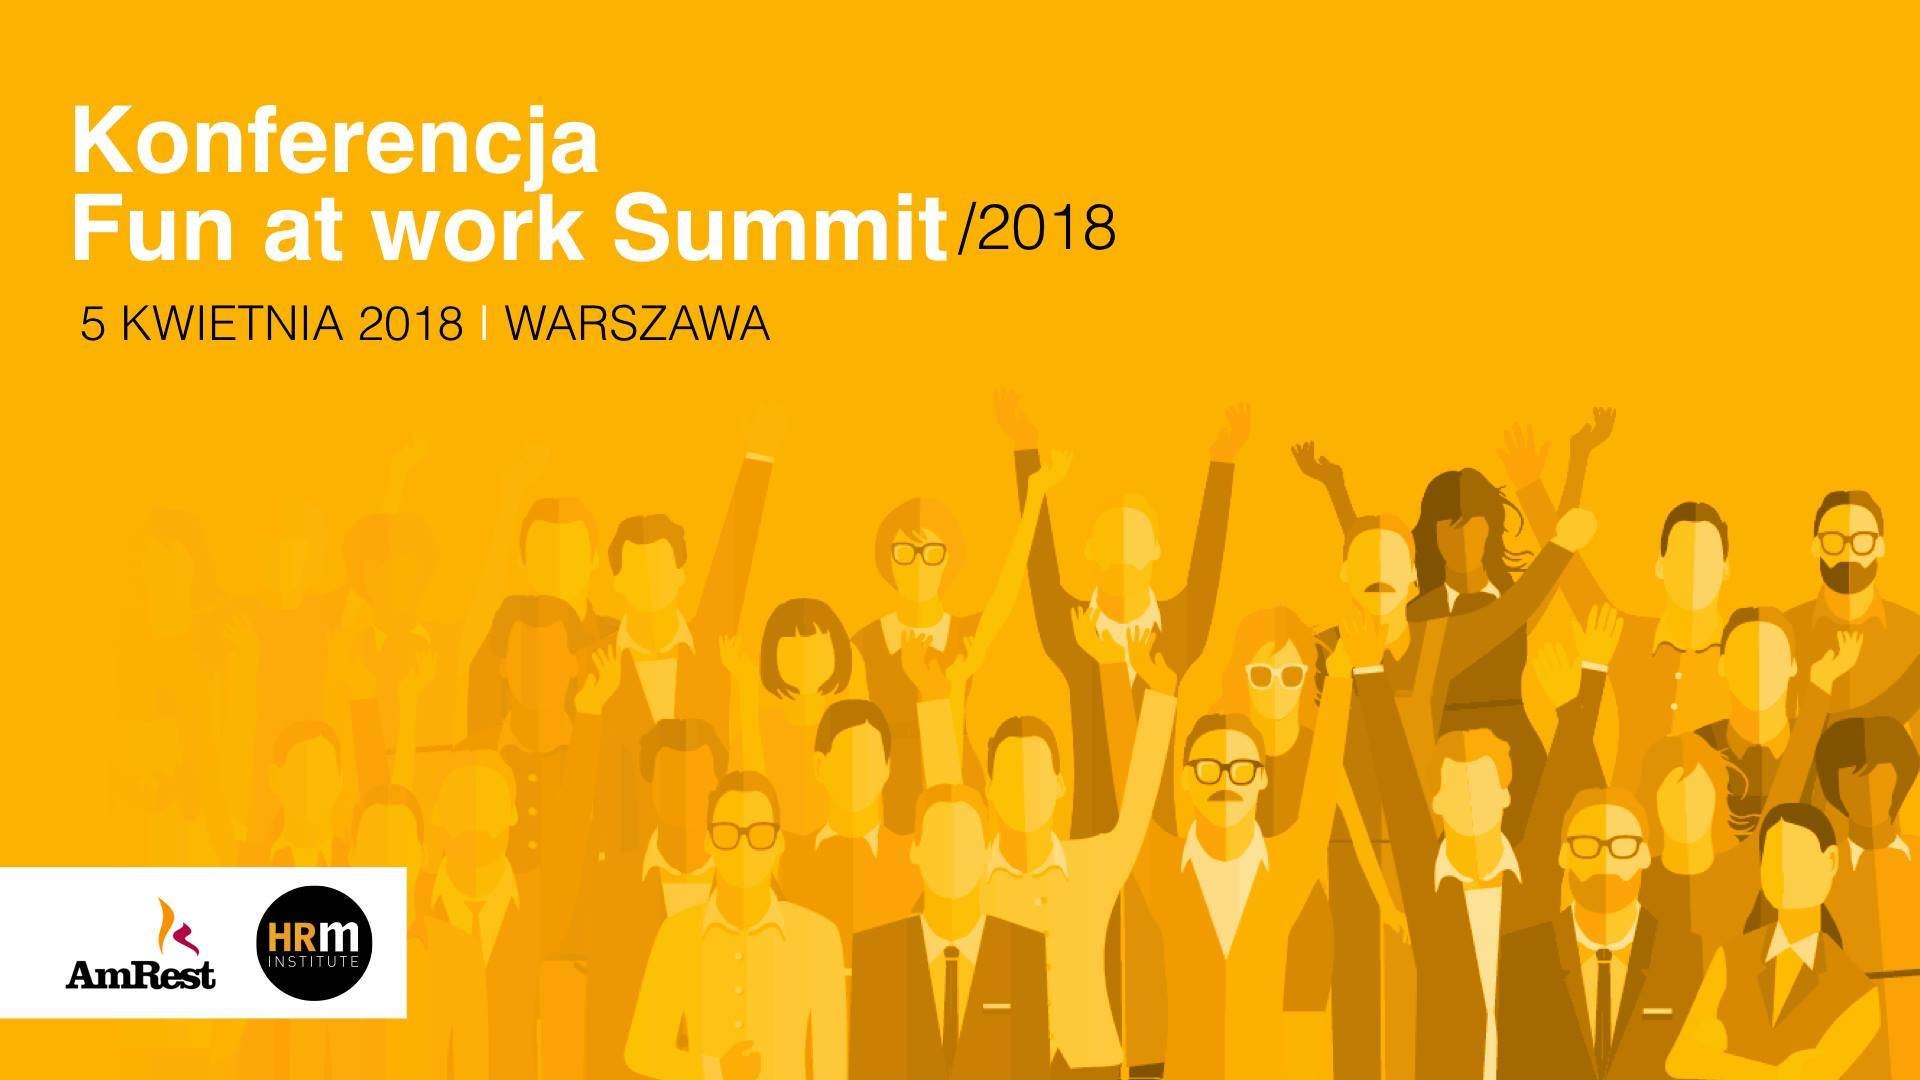 Fun at work Summit 2018